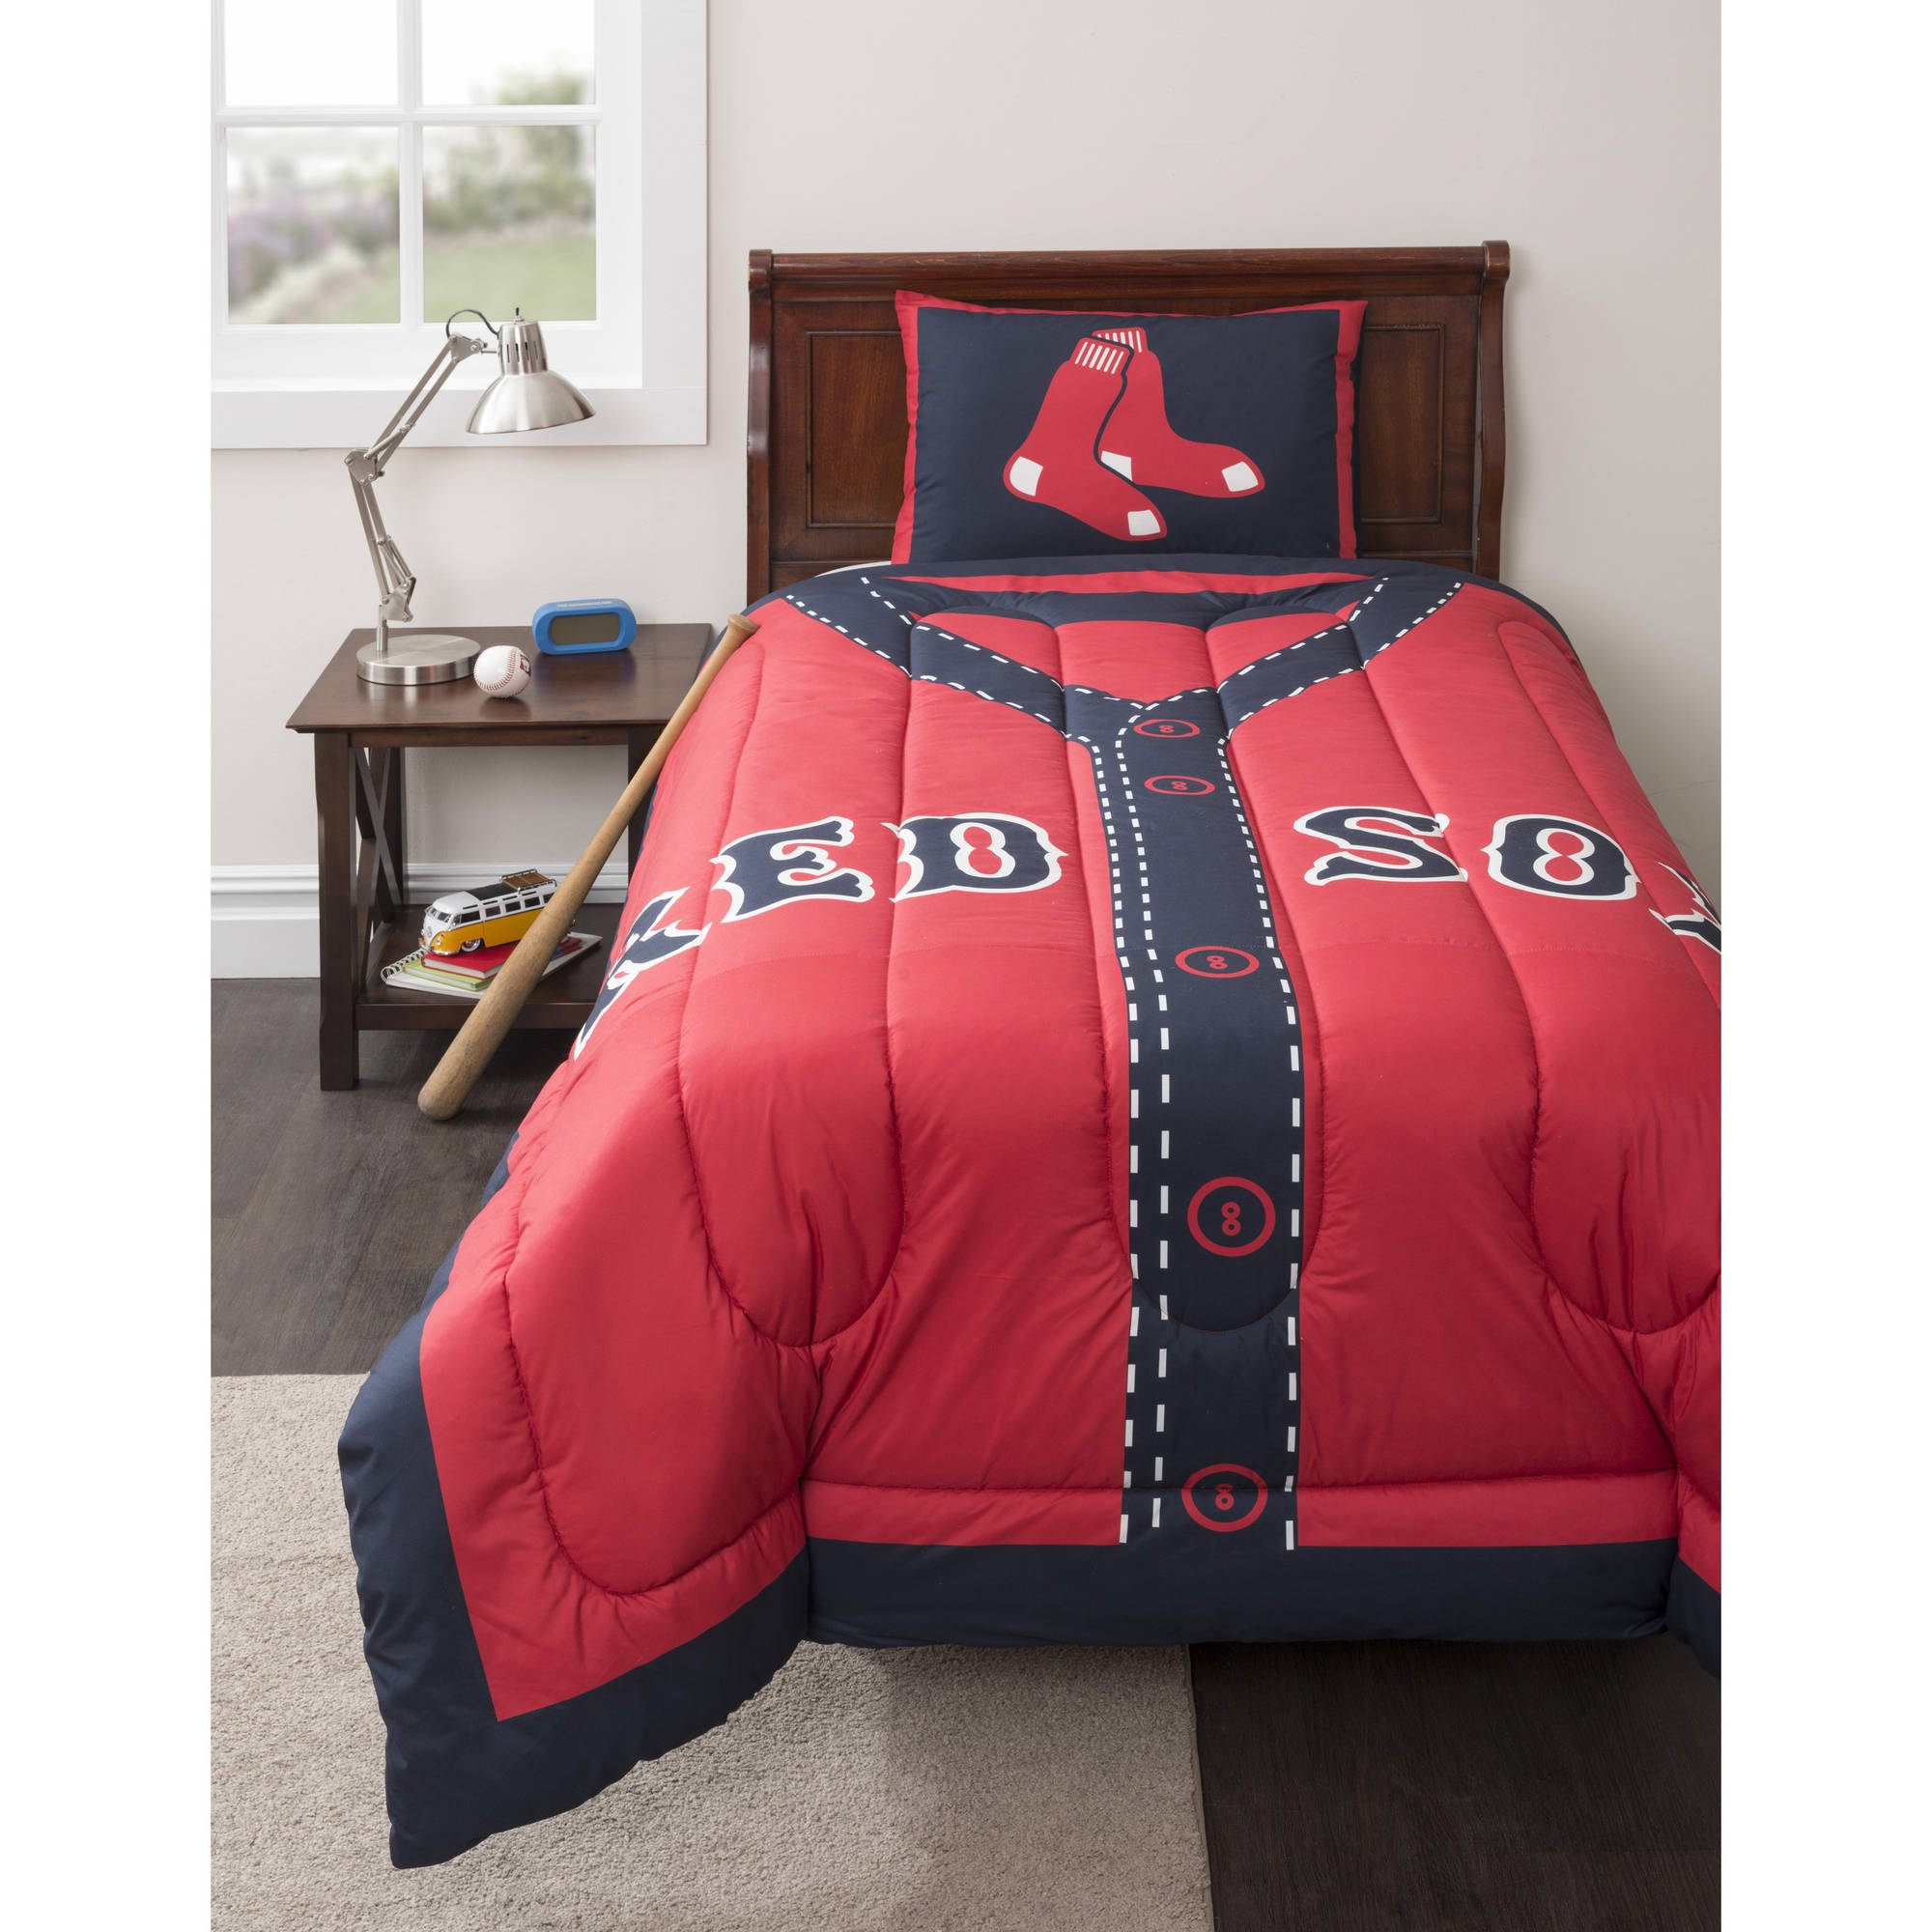 mlb boston red sox twin bedding comforter set - walmart